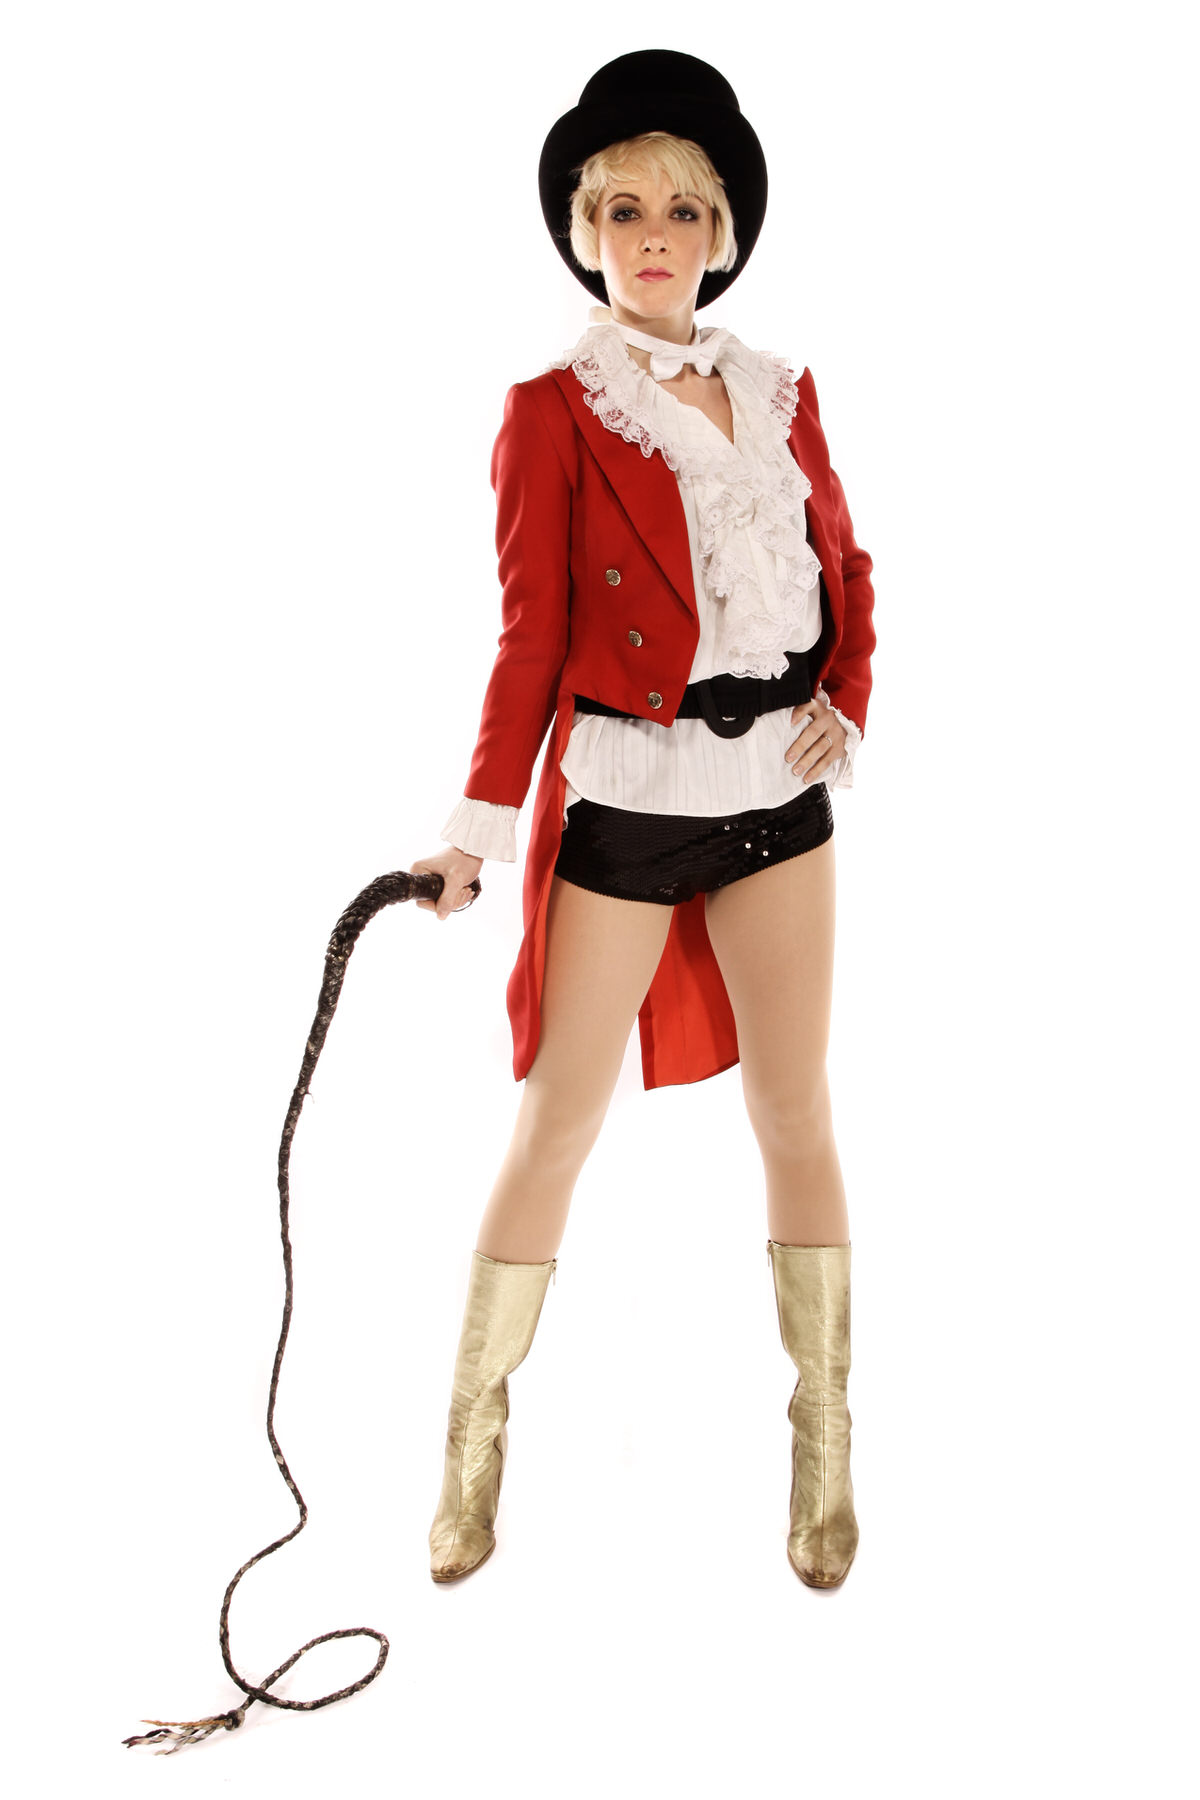 RING MISTRESS COSTUME WITH RED TAILCOAT